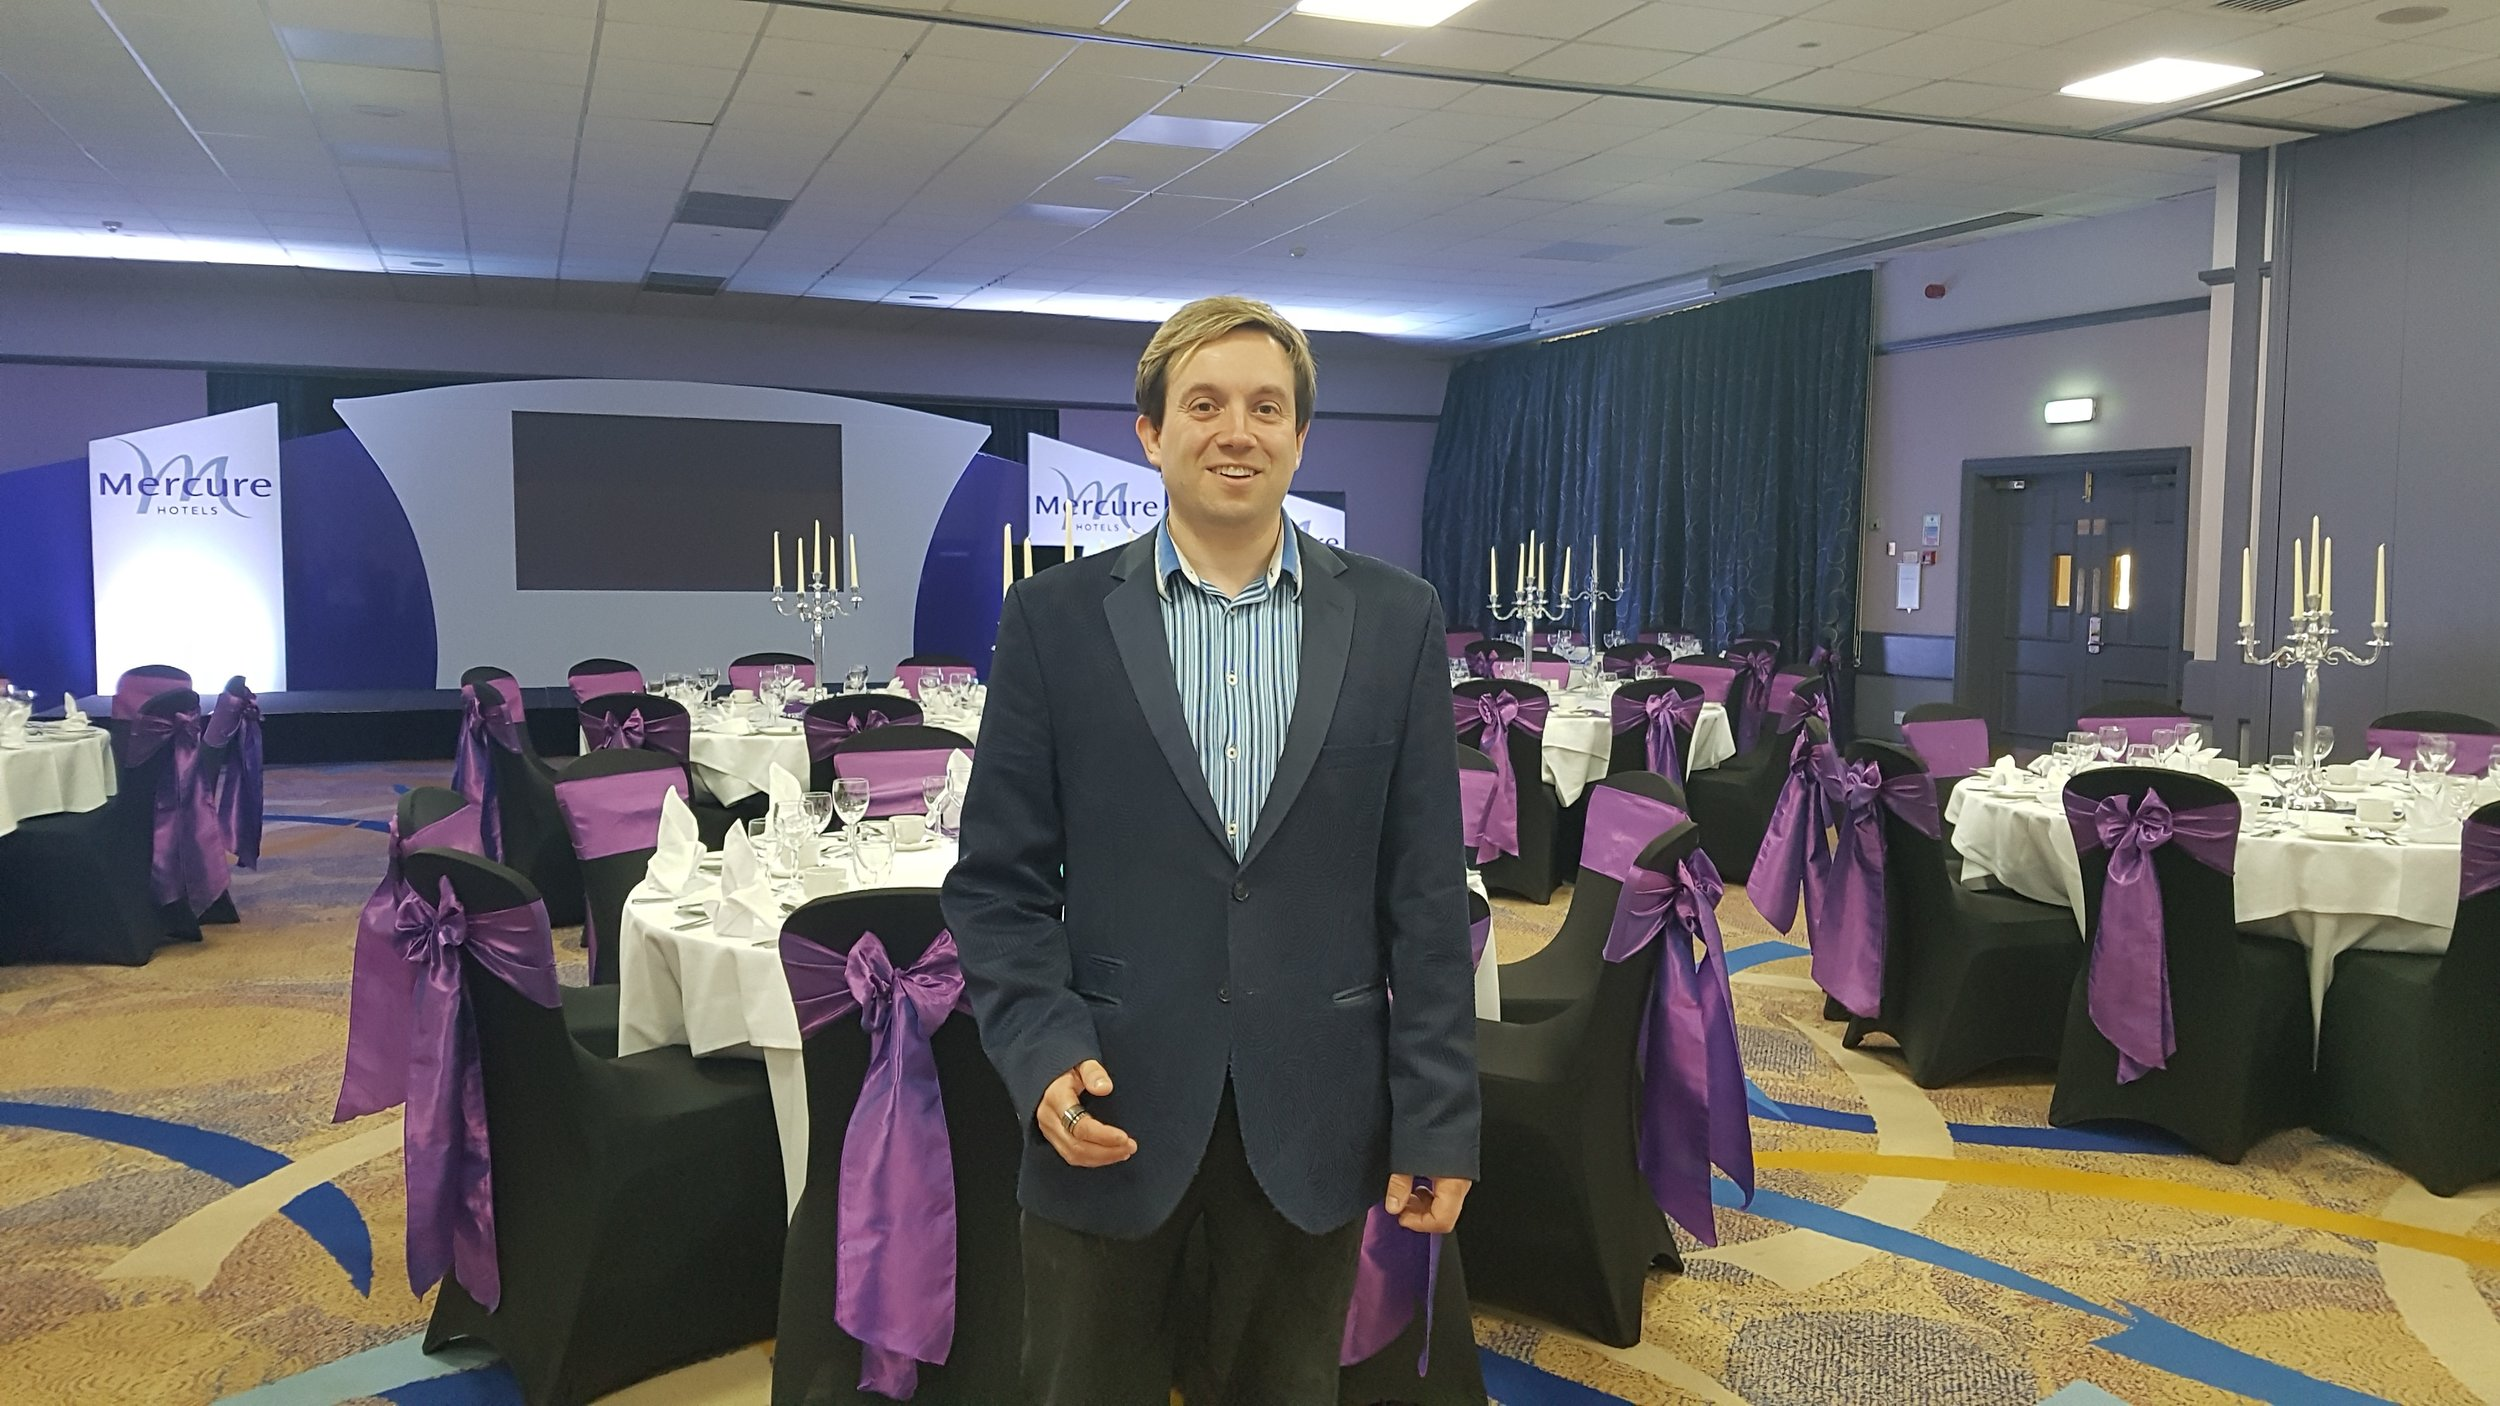 Grand Hotel - Mercure Leicestershire Magician